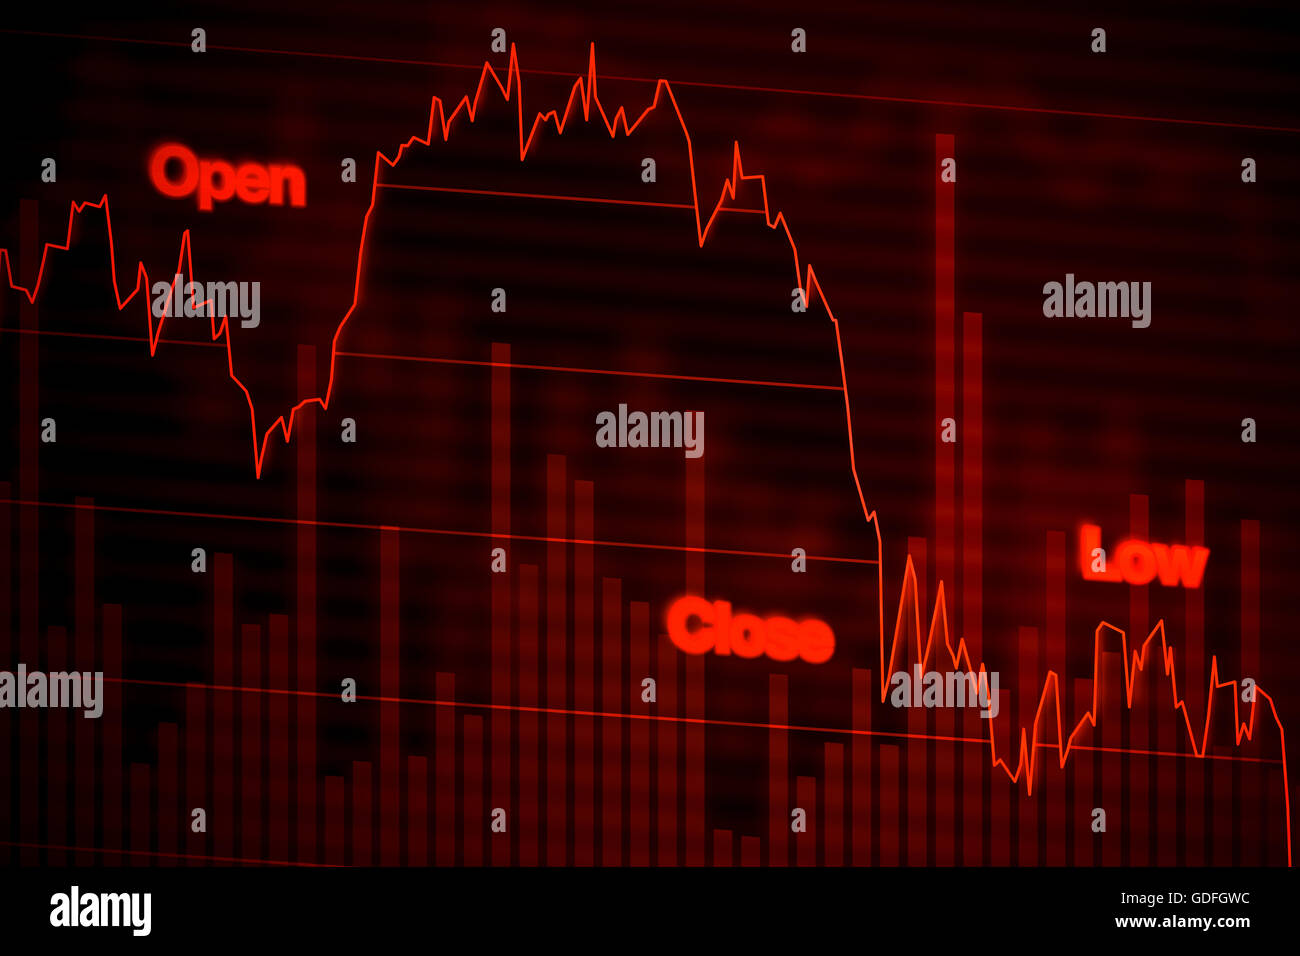 Stock market chart or graph in red falling downward bear market. - Stock Image